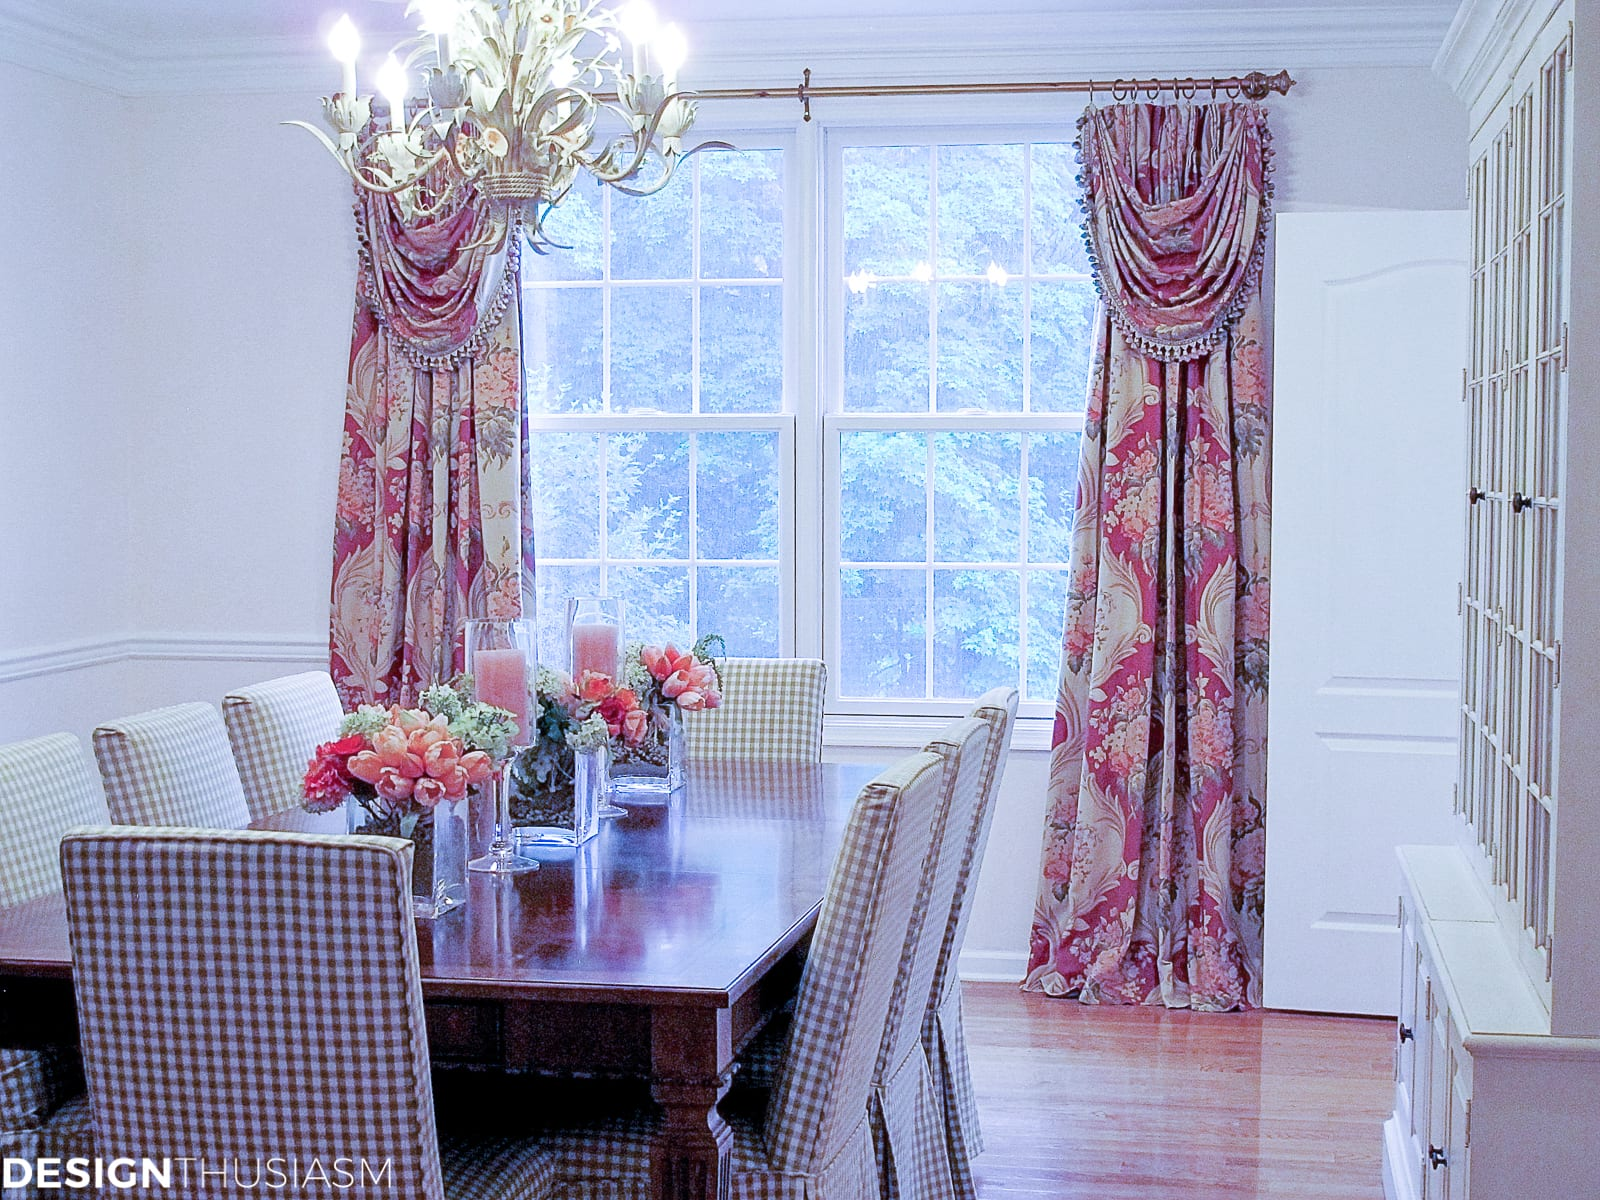 Dining room inspiration | Adding a rosy glow with blush pink - designthusiasm.com